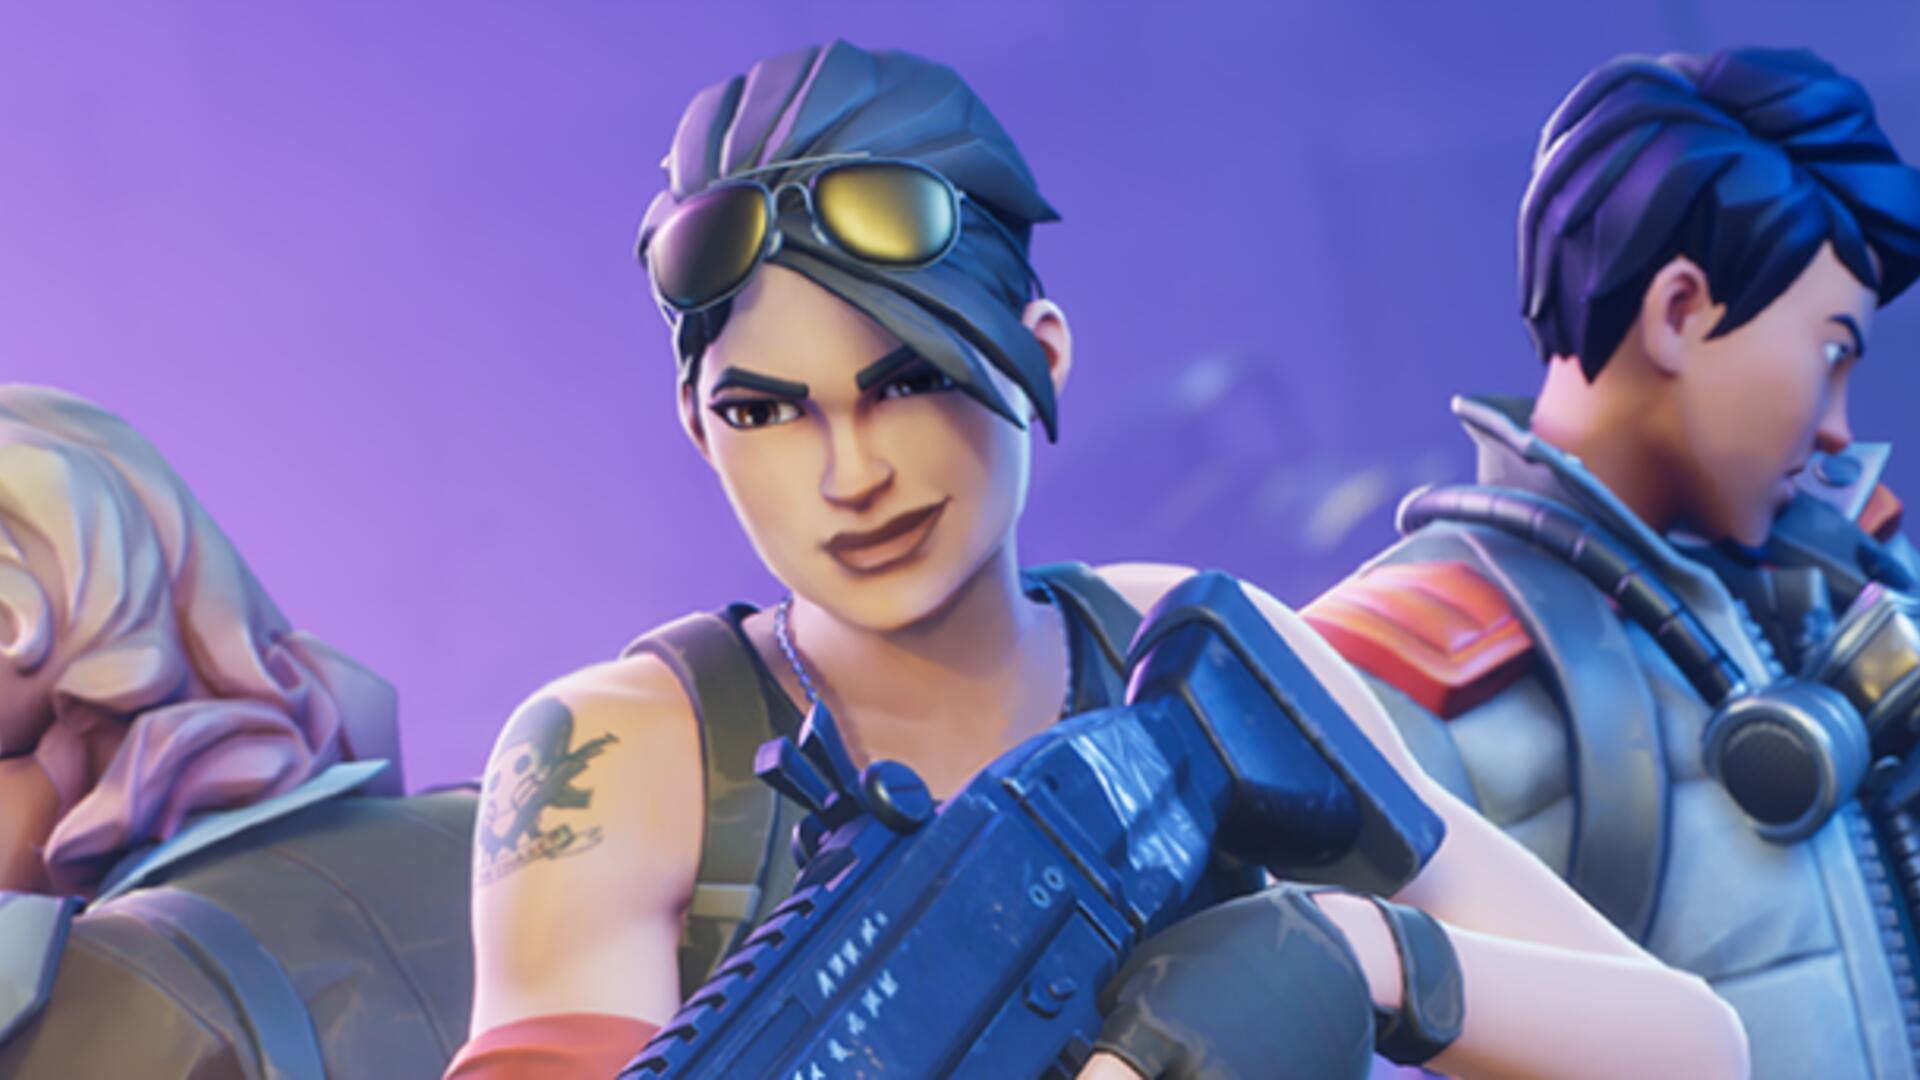 Fortnite Alpha Tournament Guide - Start Times, Pin Reward, How to